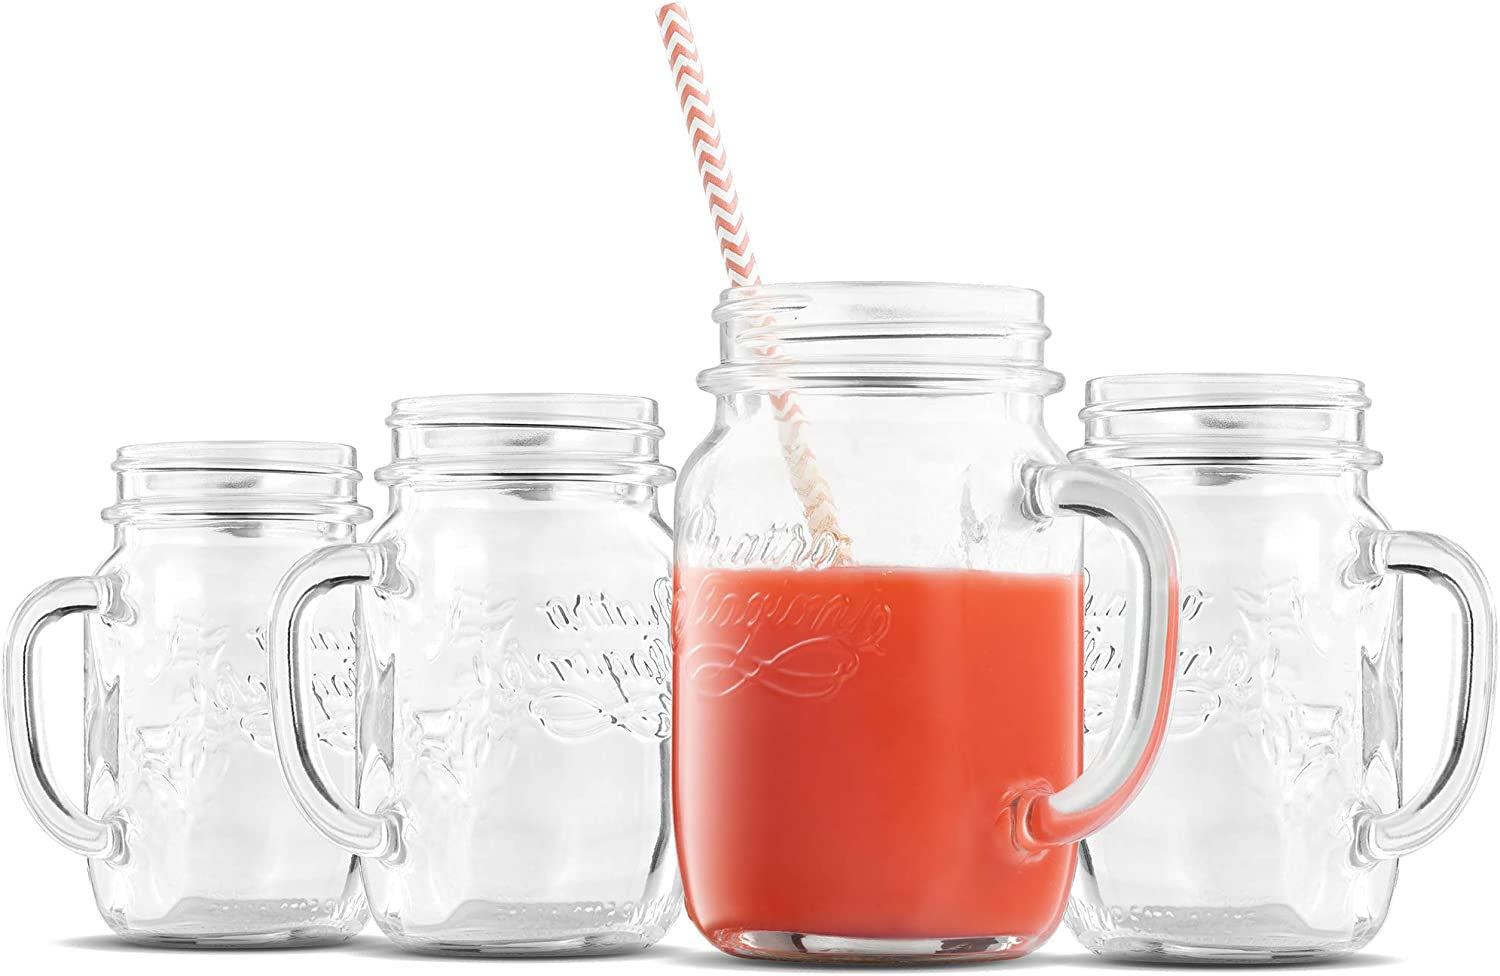 Bormioli Rocco Quattro Stagioni Mason Jar with handle 14 Ounce (4 Pack) Old Fashioned Drinking Glasses for Home Bar, Parties, Cocktails, Juice, Water, and Everyday Drinking Glasses (Lids Not Included)